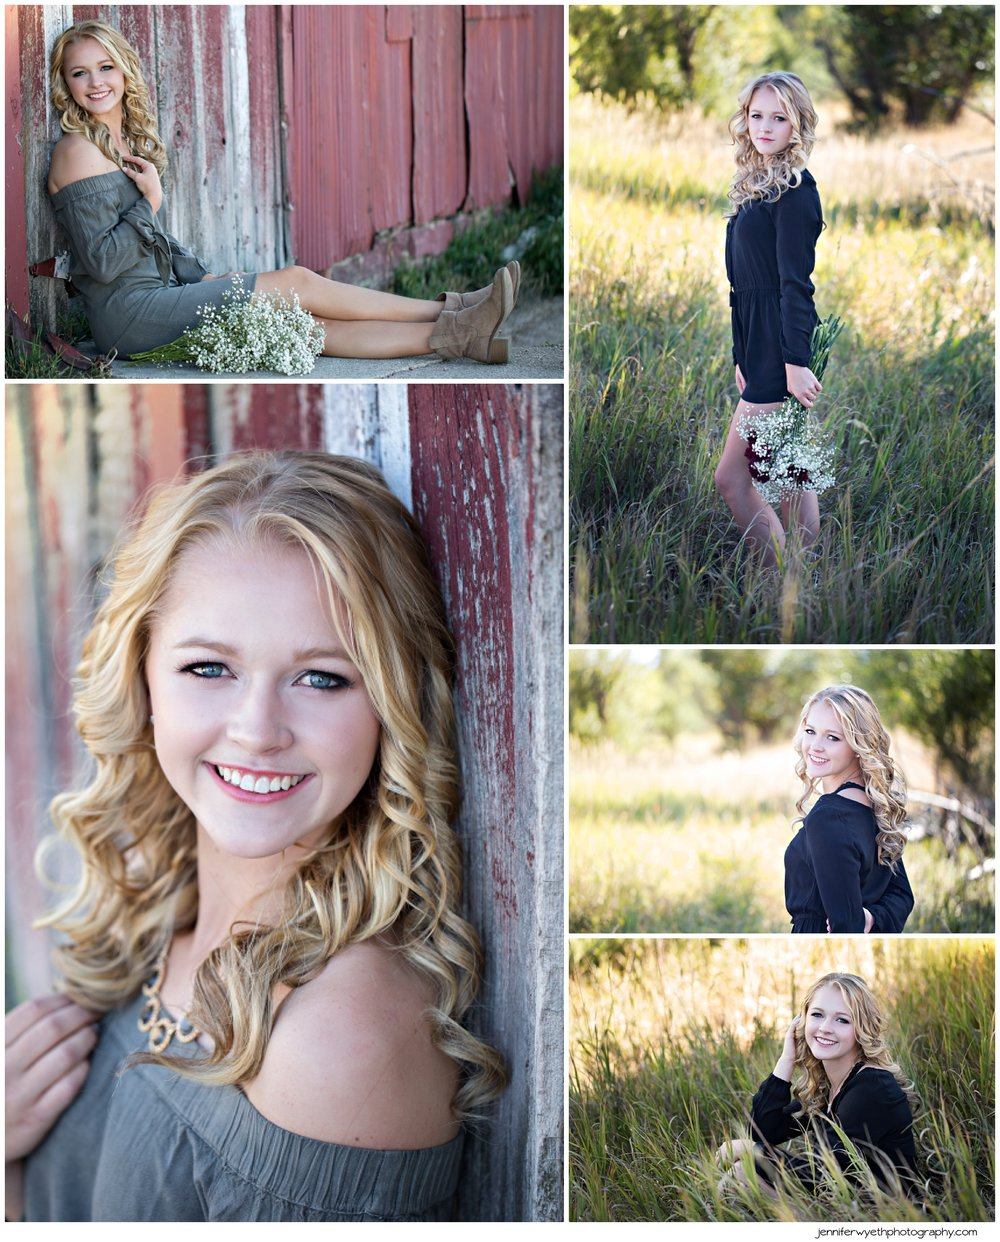 Jennifer-Wyeth-photography-senior-pictures-colorado-springs-photographer_0185.jpg